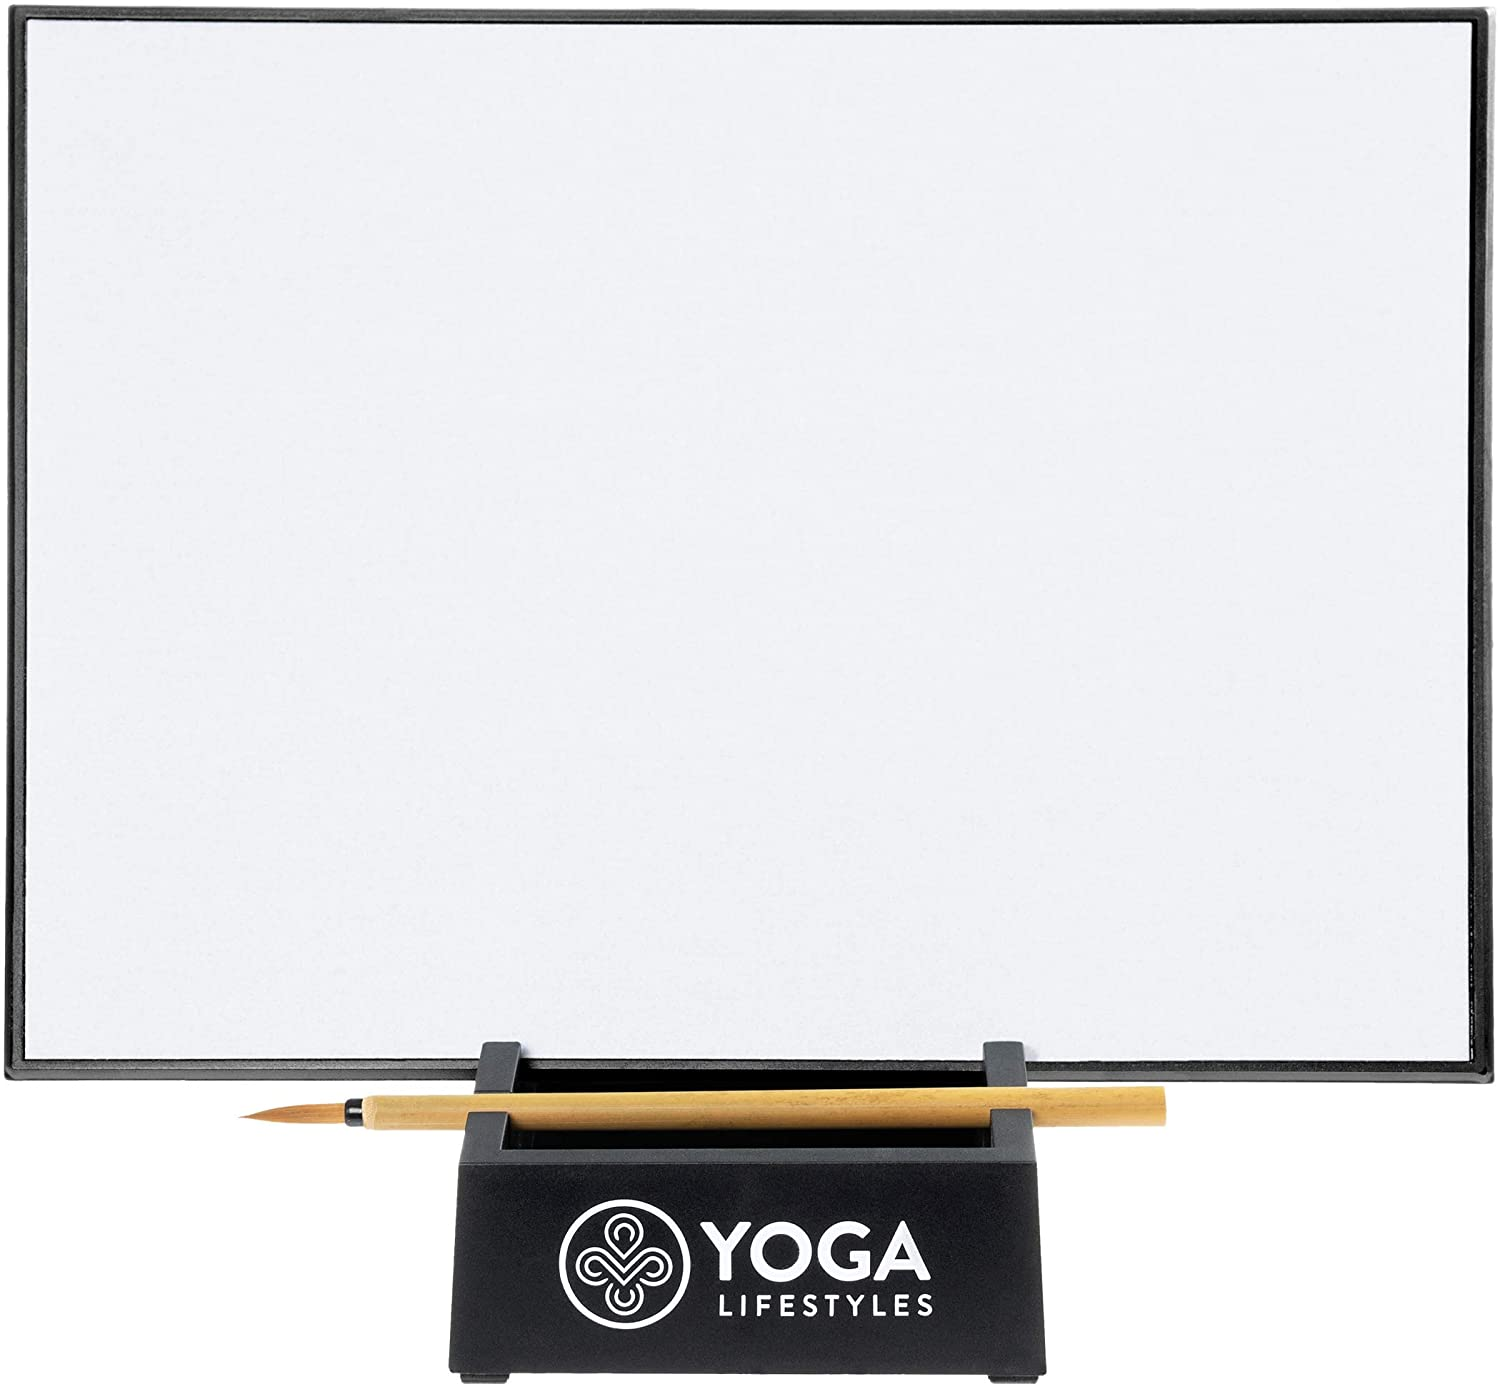 Zen Buddha Water Canvas Board for Stress Relief – with Stand and Bamboo Brush – Inkless, Disappearing Art – Art Board for Meditation, Relaxation Yoga Lifestyles YL-01